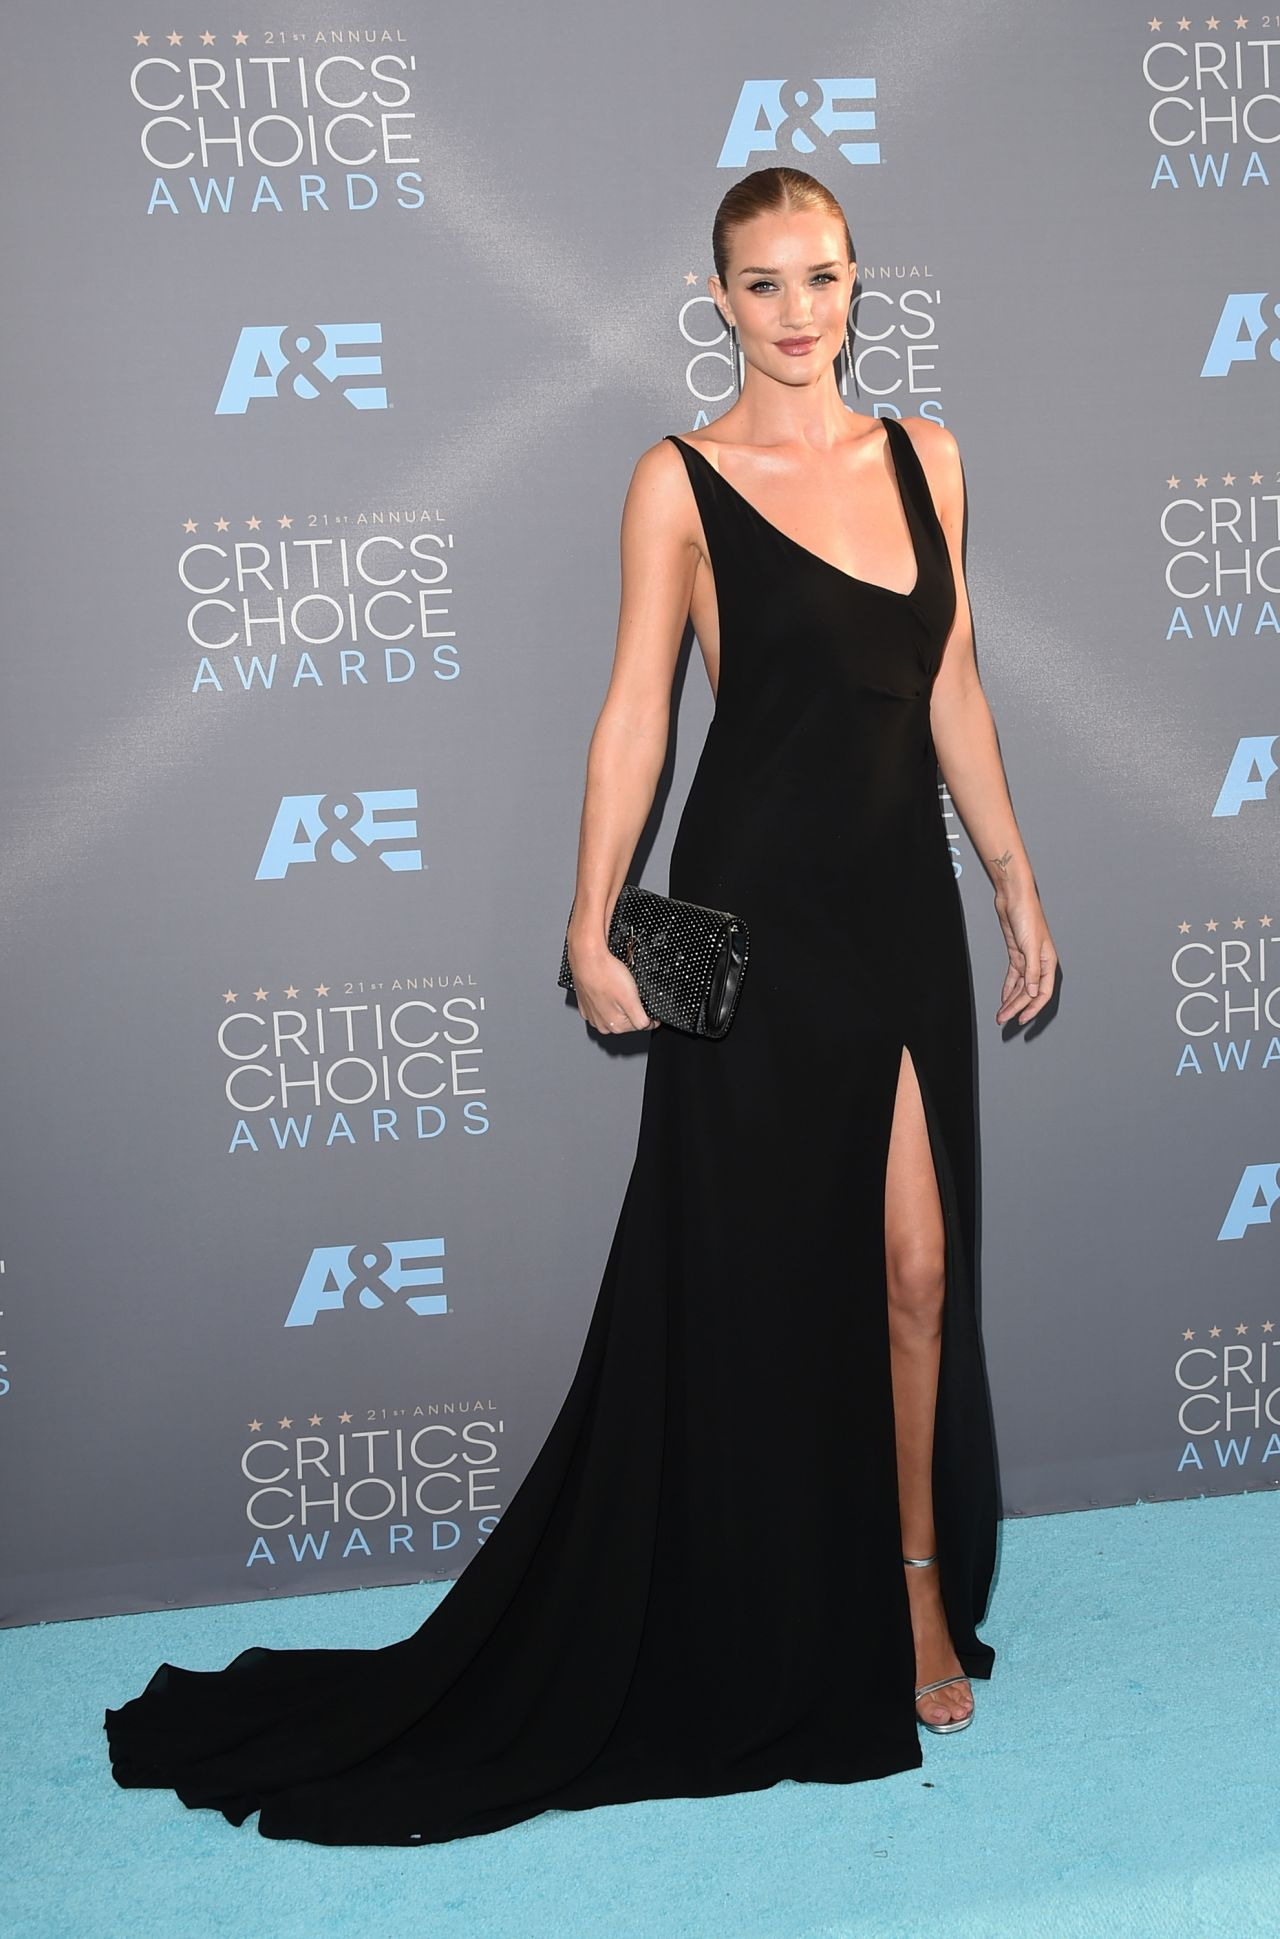 rosie-huntington-whiteley-2016-critics-choice-awards-in-santa-monica-12